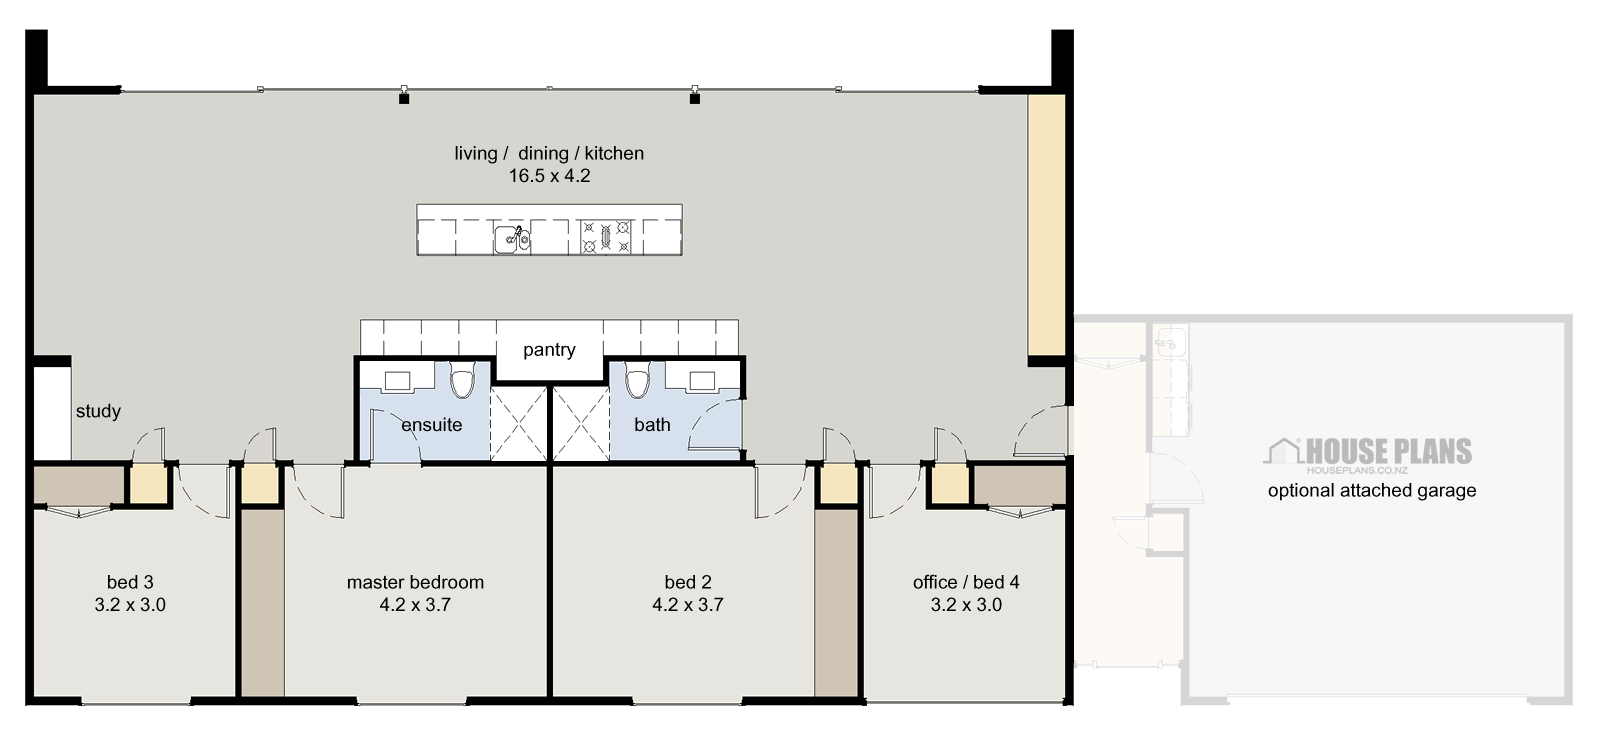 4 Bedroom Home Plans And Designs Symmetry Posted In 4 Bedroom House Plans Modern Homes  House